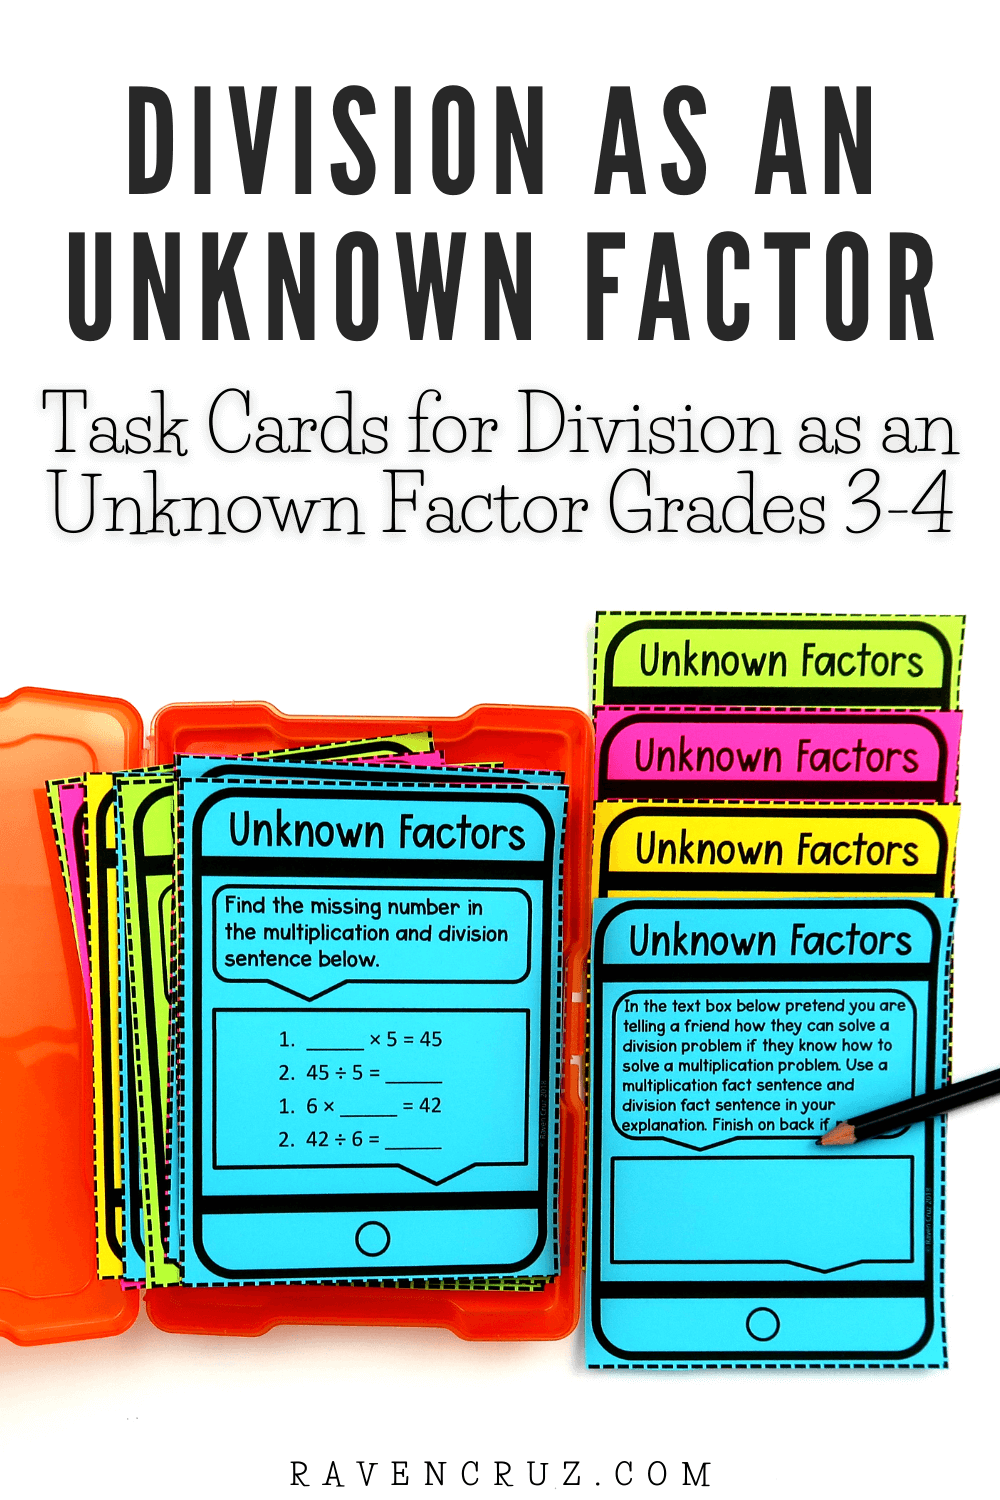 Division task cards for 3rd-grade math.